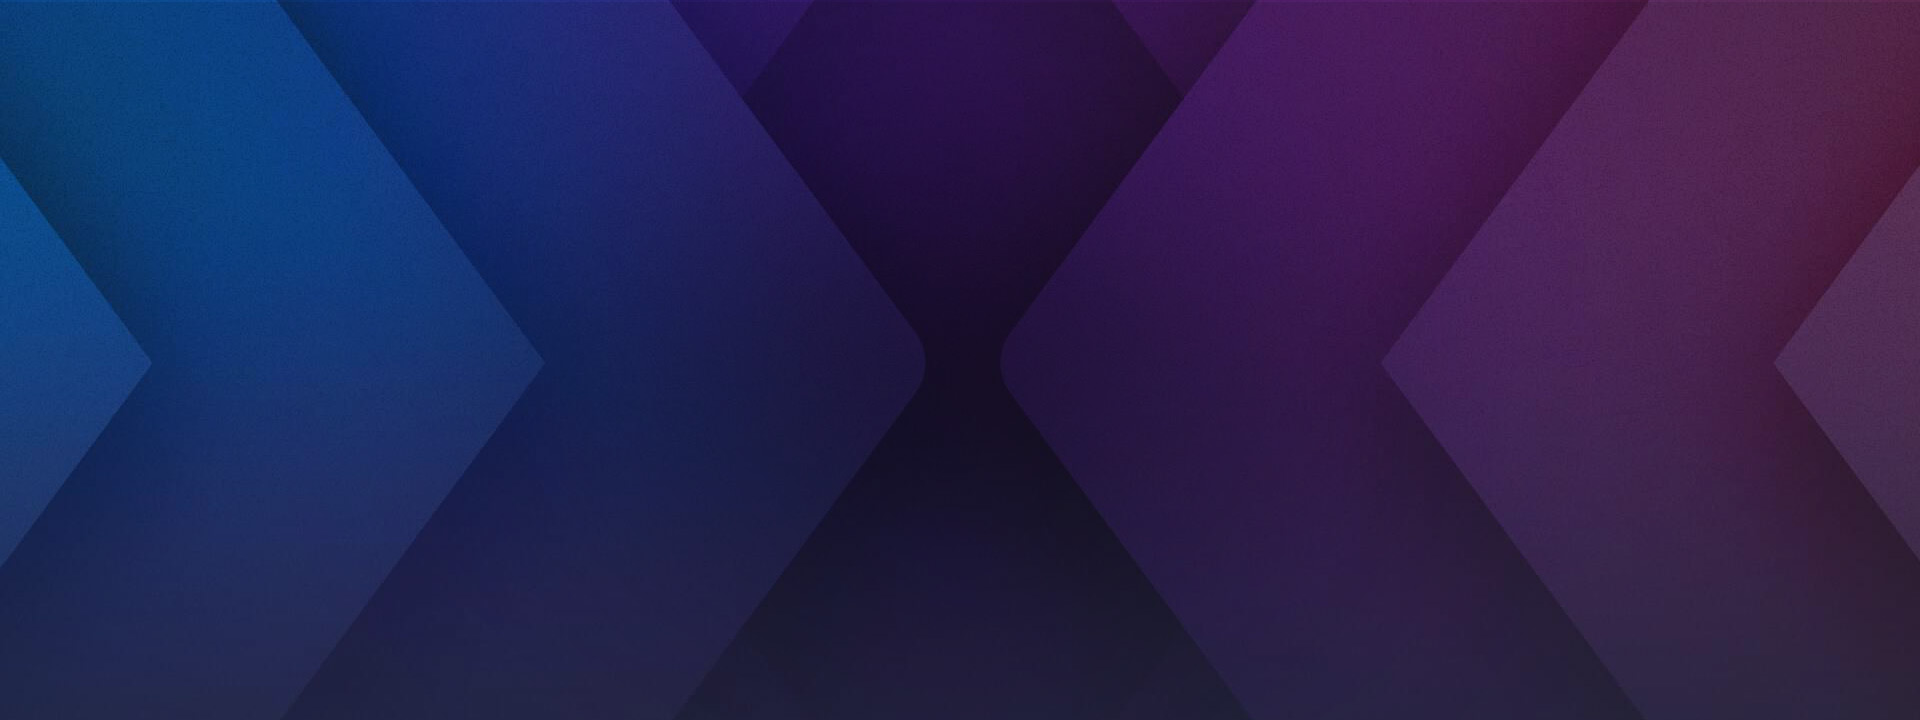 Blue to purple gradient of a stylised Mixer logo X